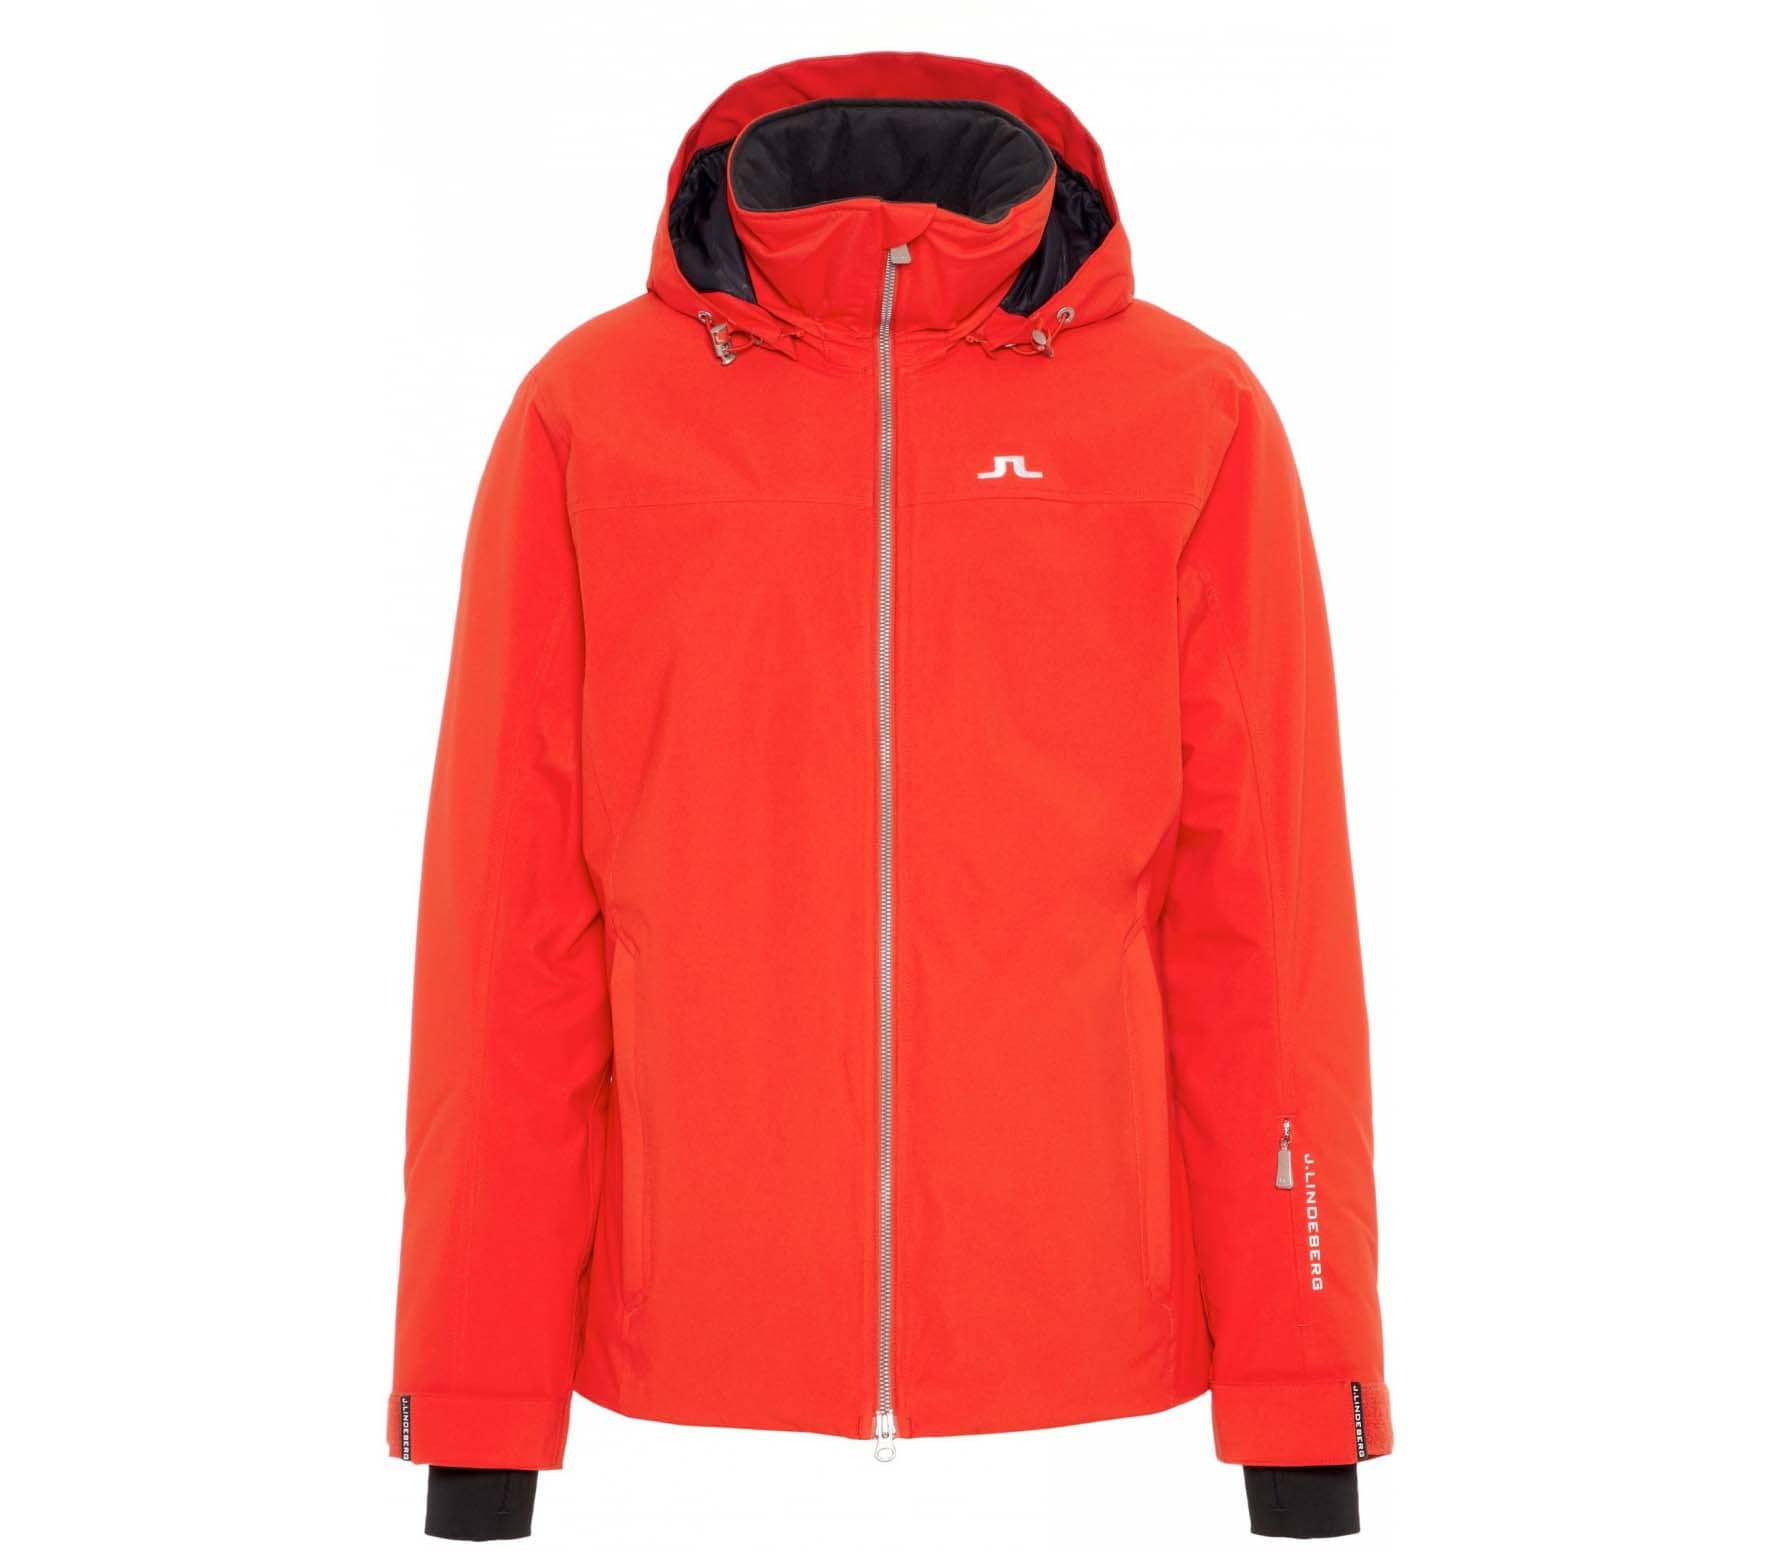 J.Lindeberg - Truuli JL 2L men's skis jacket (red)